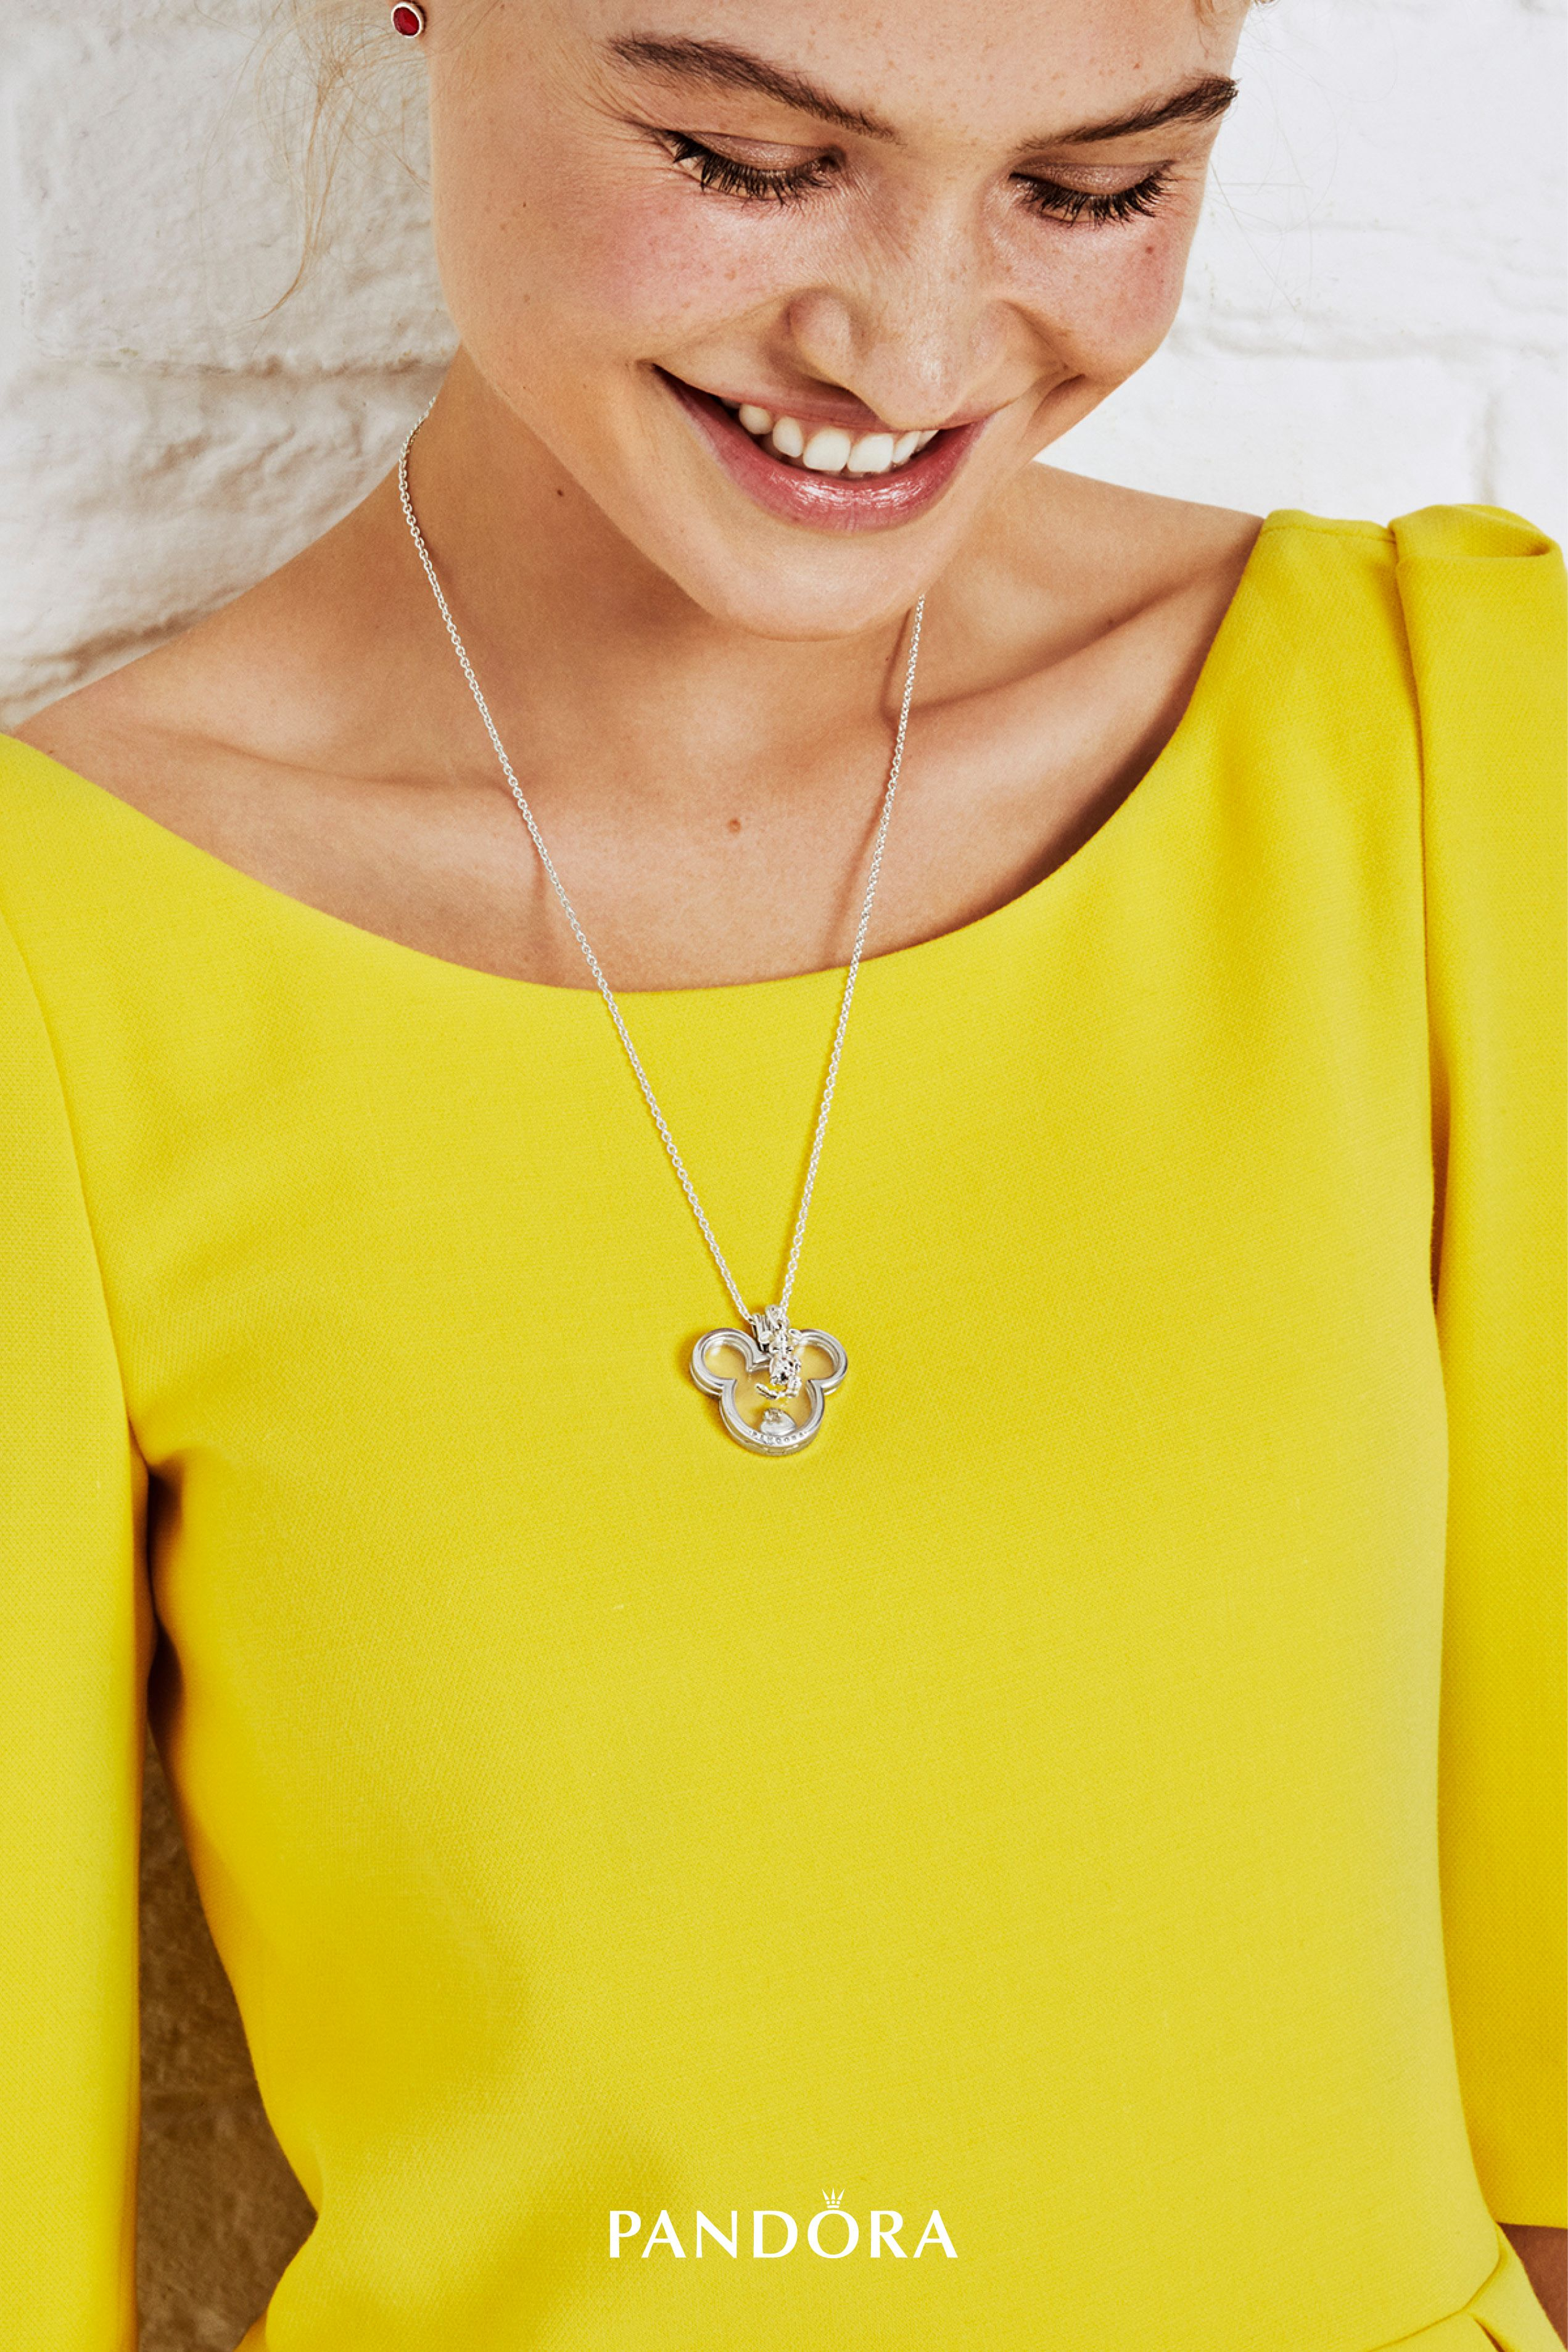 Channel Childhood Memories With Our New Floating Locket Shaped As With Regard To 2019 Disney Mickey Floating Locket Necklaces (View 4 of 25)